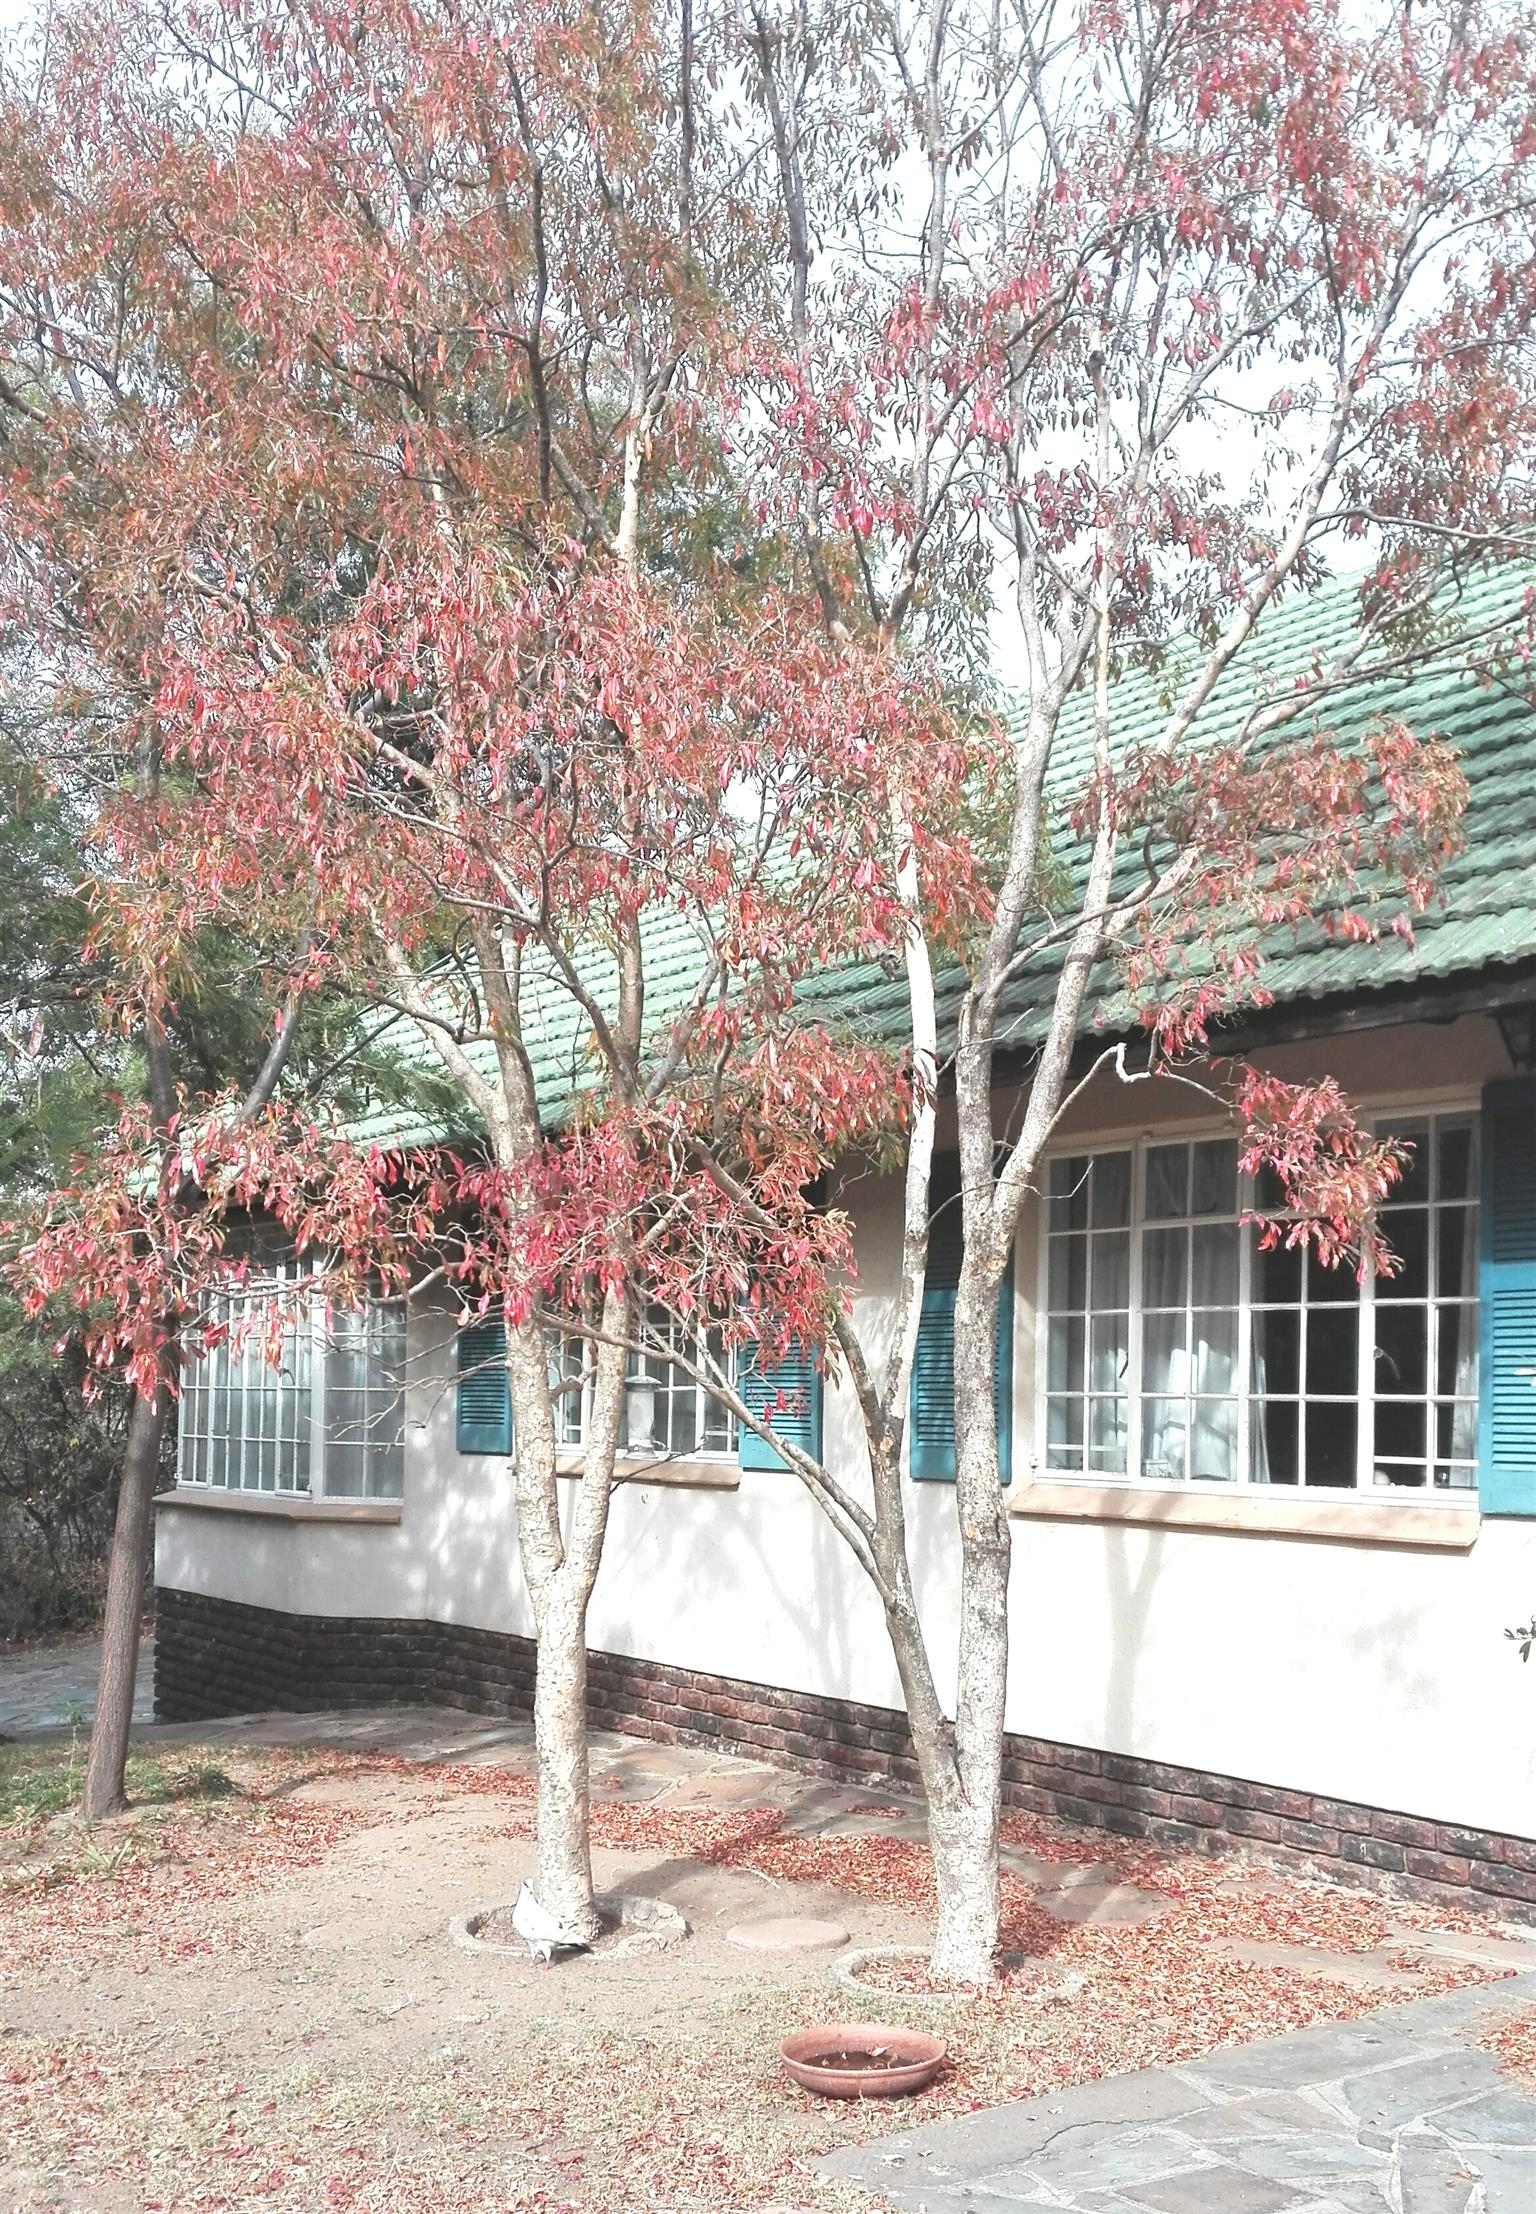 House in Bryanston area